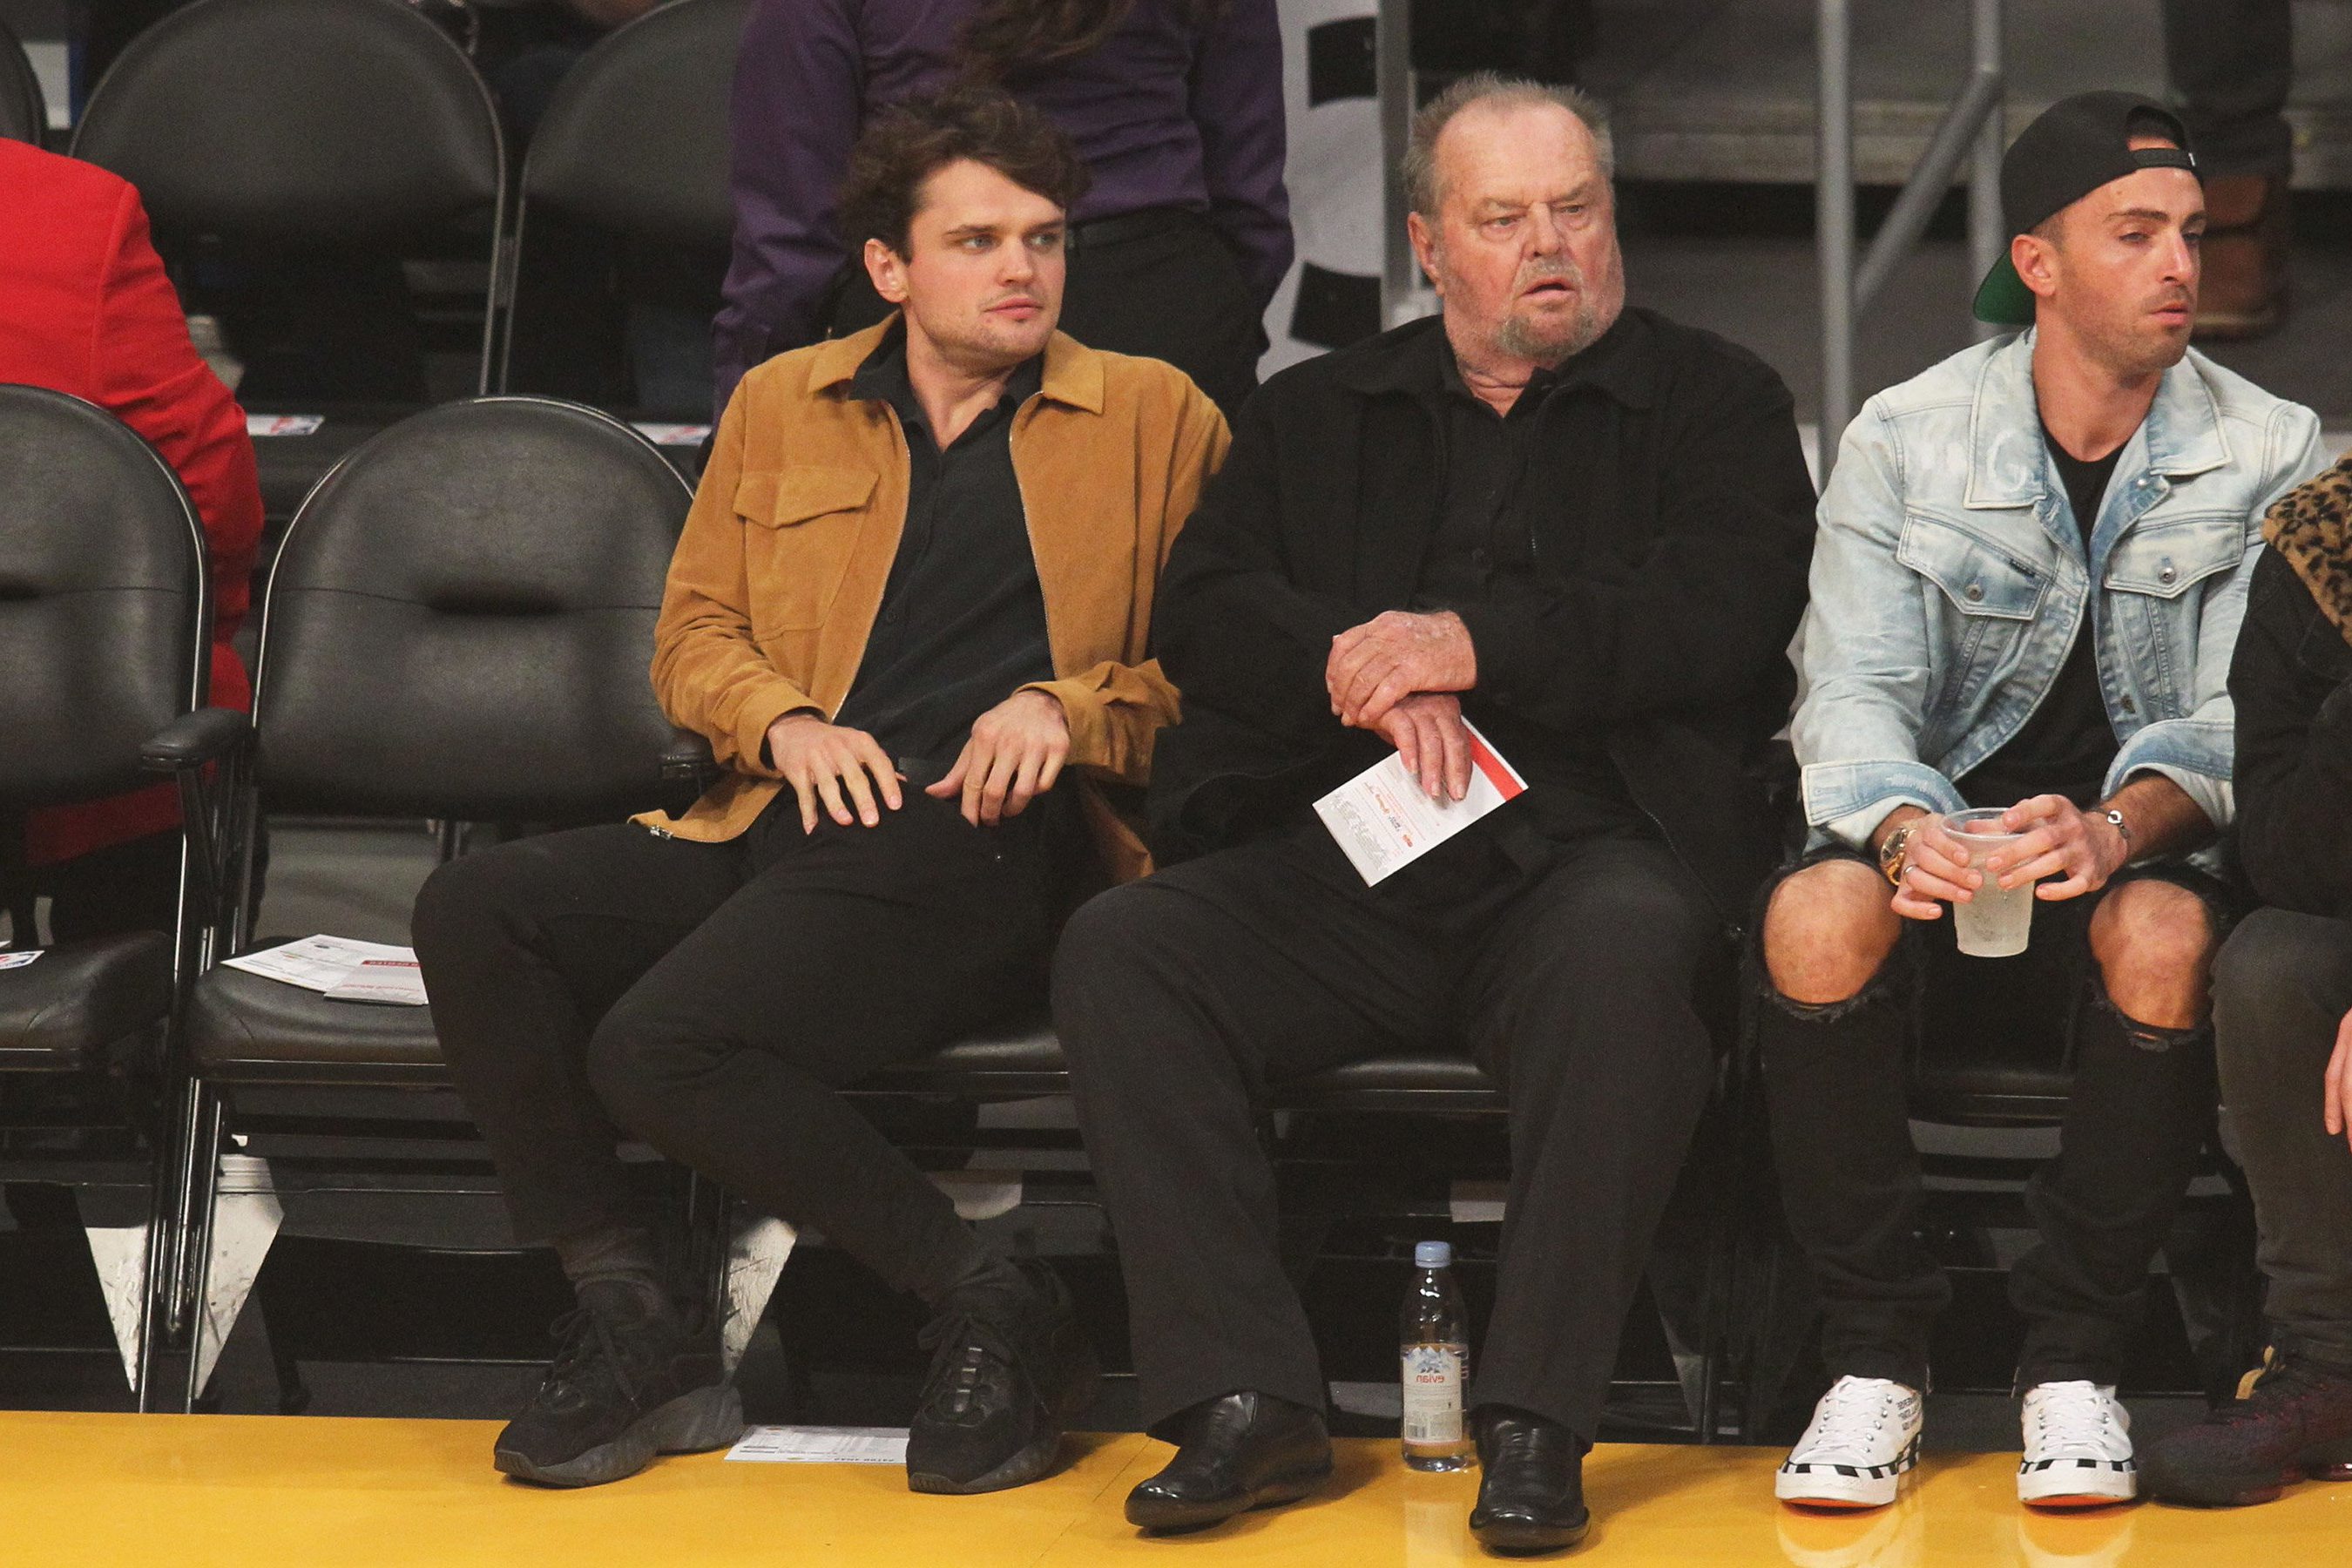 Entertainment Jack Nicholson 81 Catches Lakers Game With 26 Year Old Son Ray In Rare Outing Pressfrom Canada This made ethel his grandmother and sister lorraine his aunt. jack nicholson 81 catches lakers game